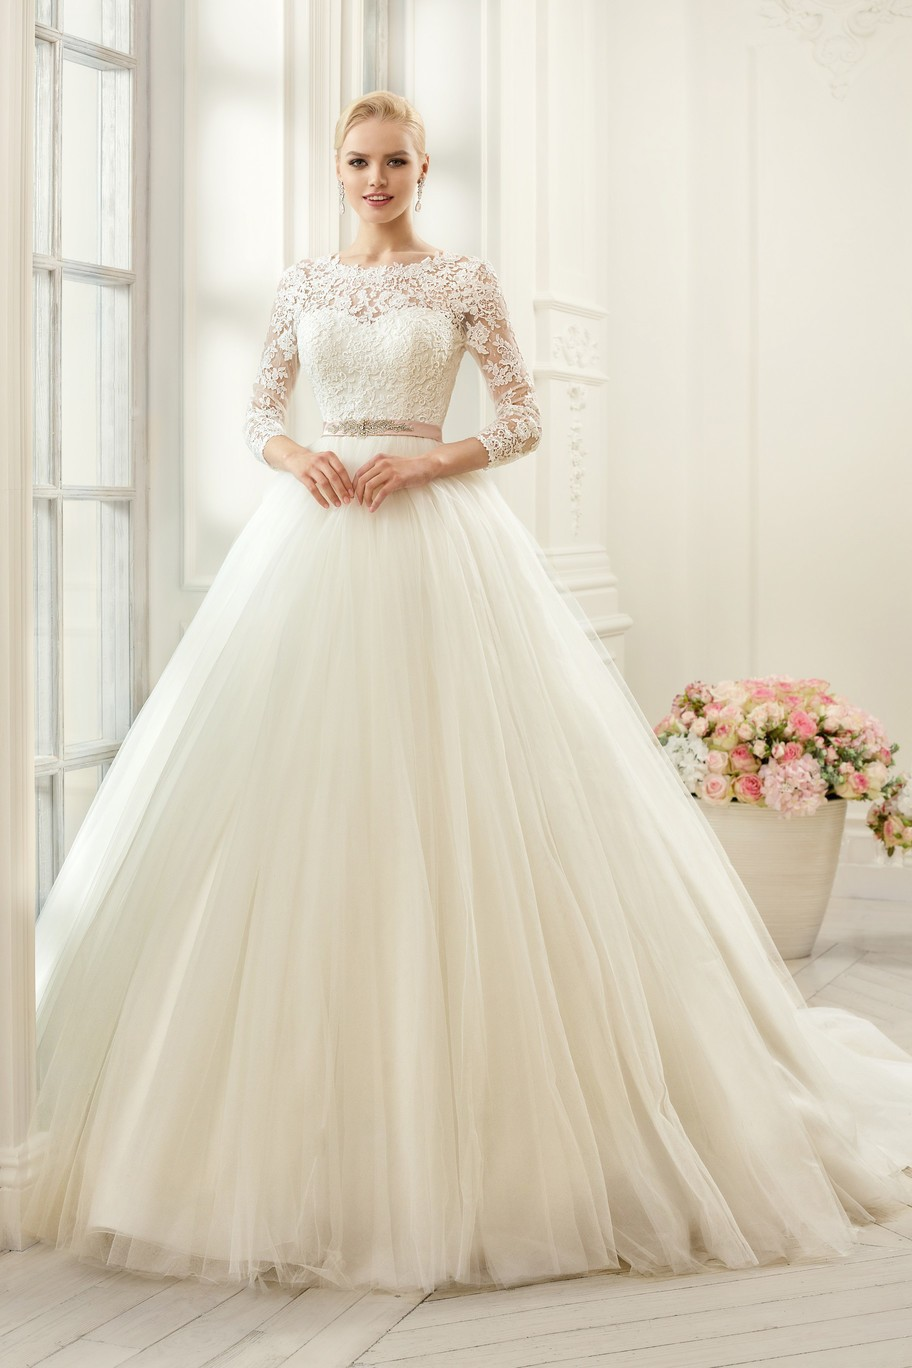 Sexy Backless Lace Wedding Dresses with Sleeves Ball Gown 2015 Long Tulle Wedding Bridal Gowns High Neck Vestido De Noiva BW82